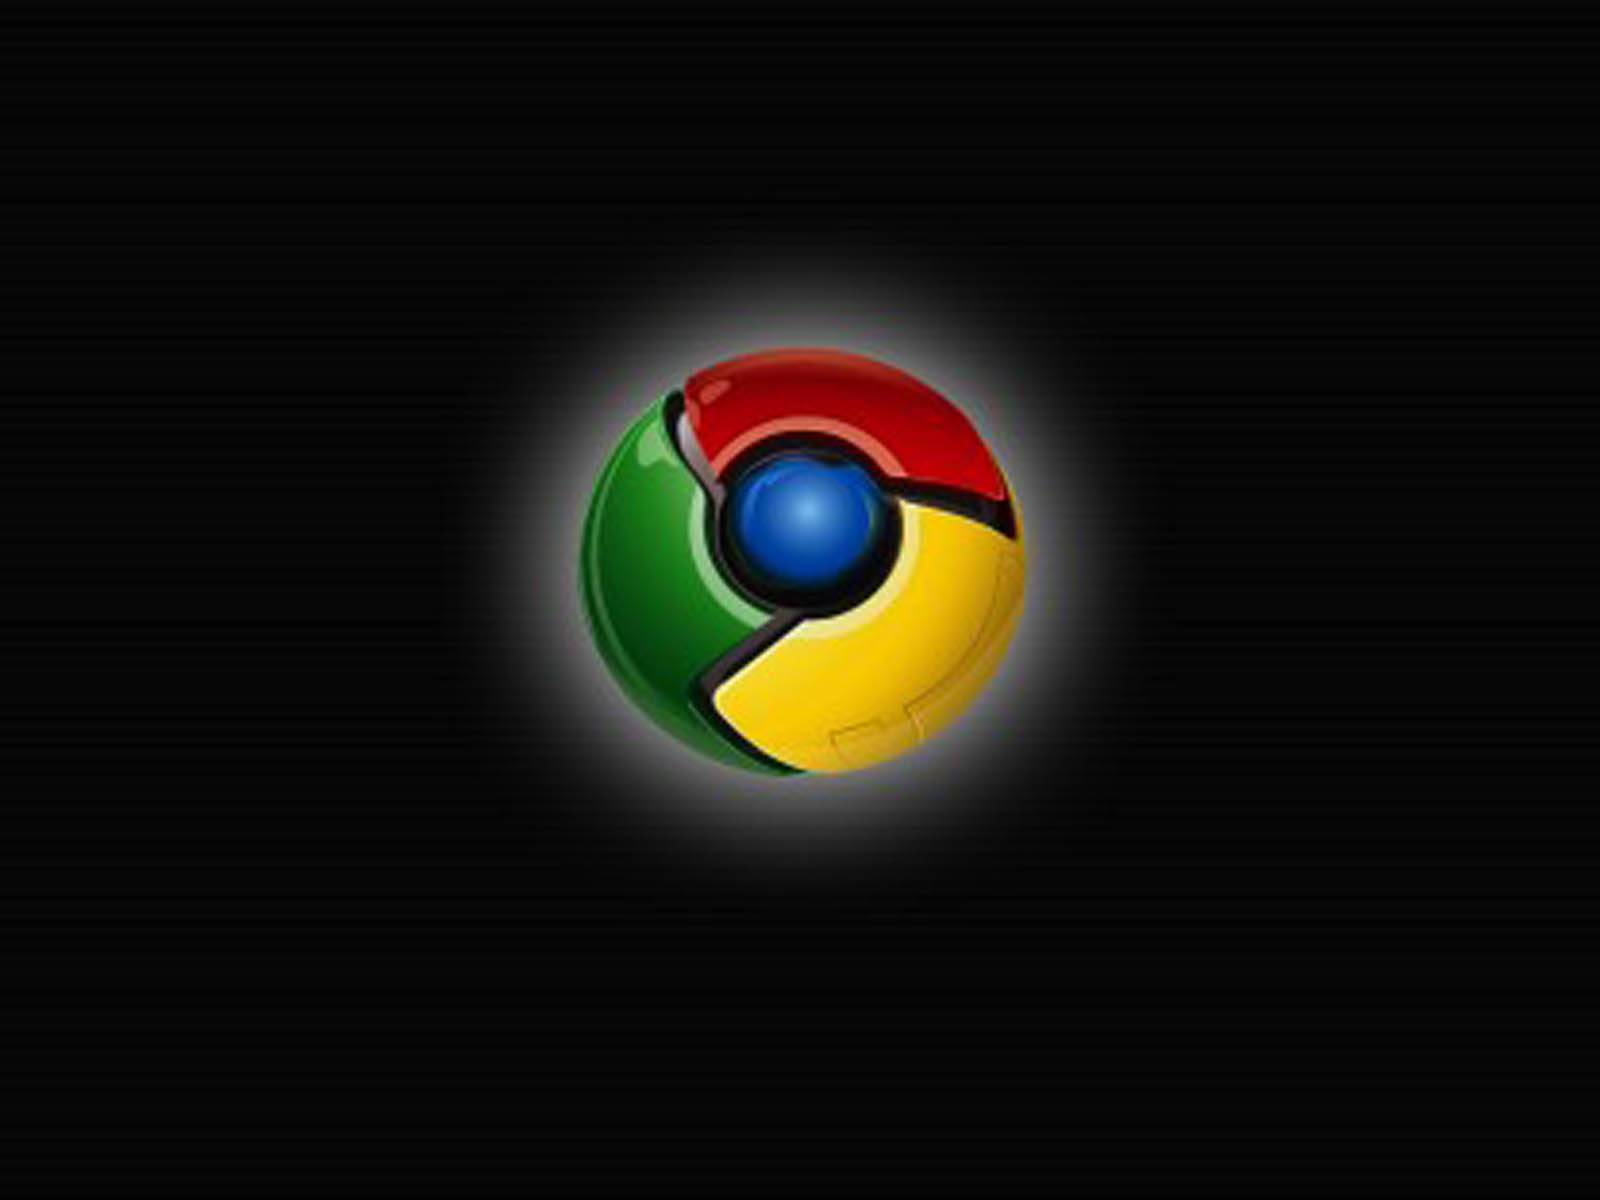 Google chrome themes gallery 2012 free download - Google Chrome Wallpaper Free Download Google Chrome Wallpapers